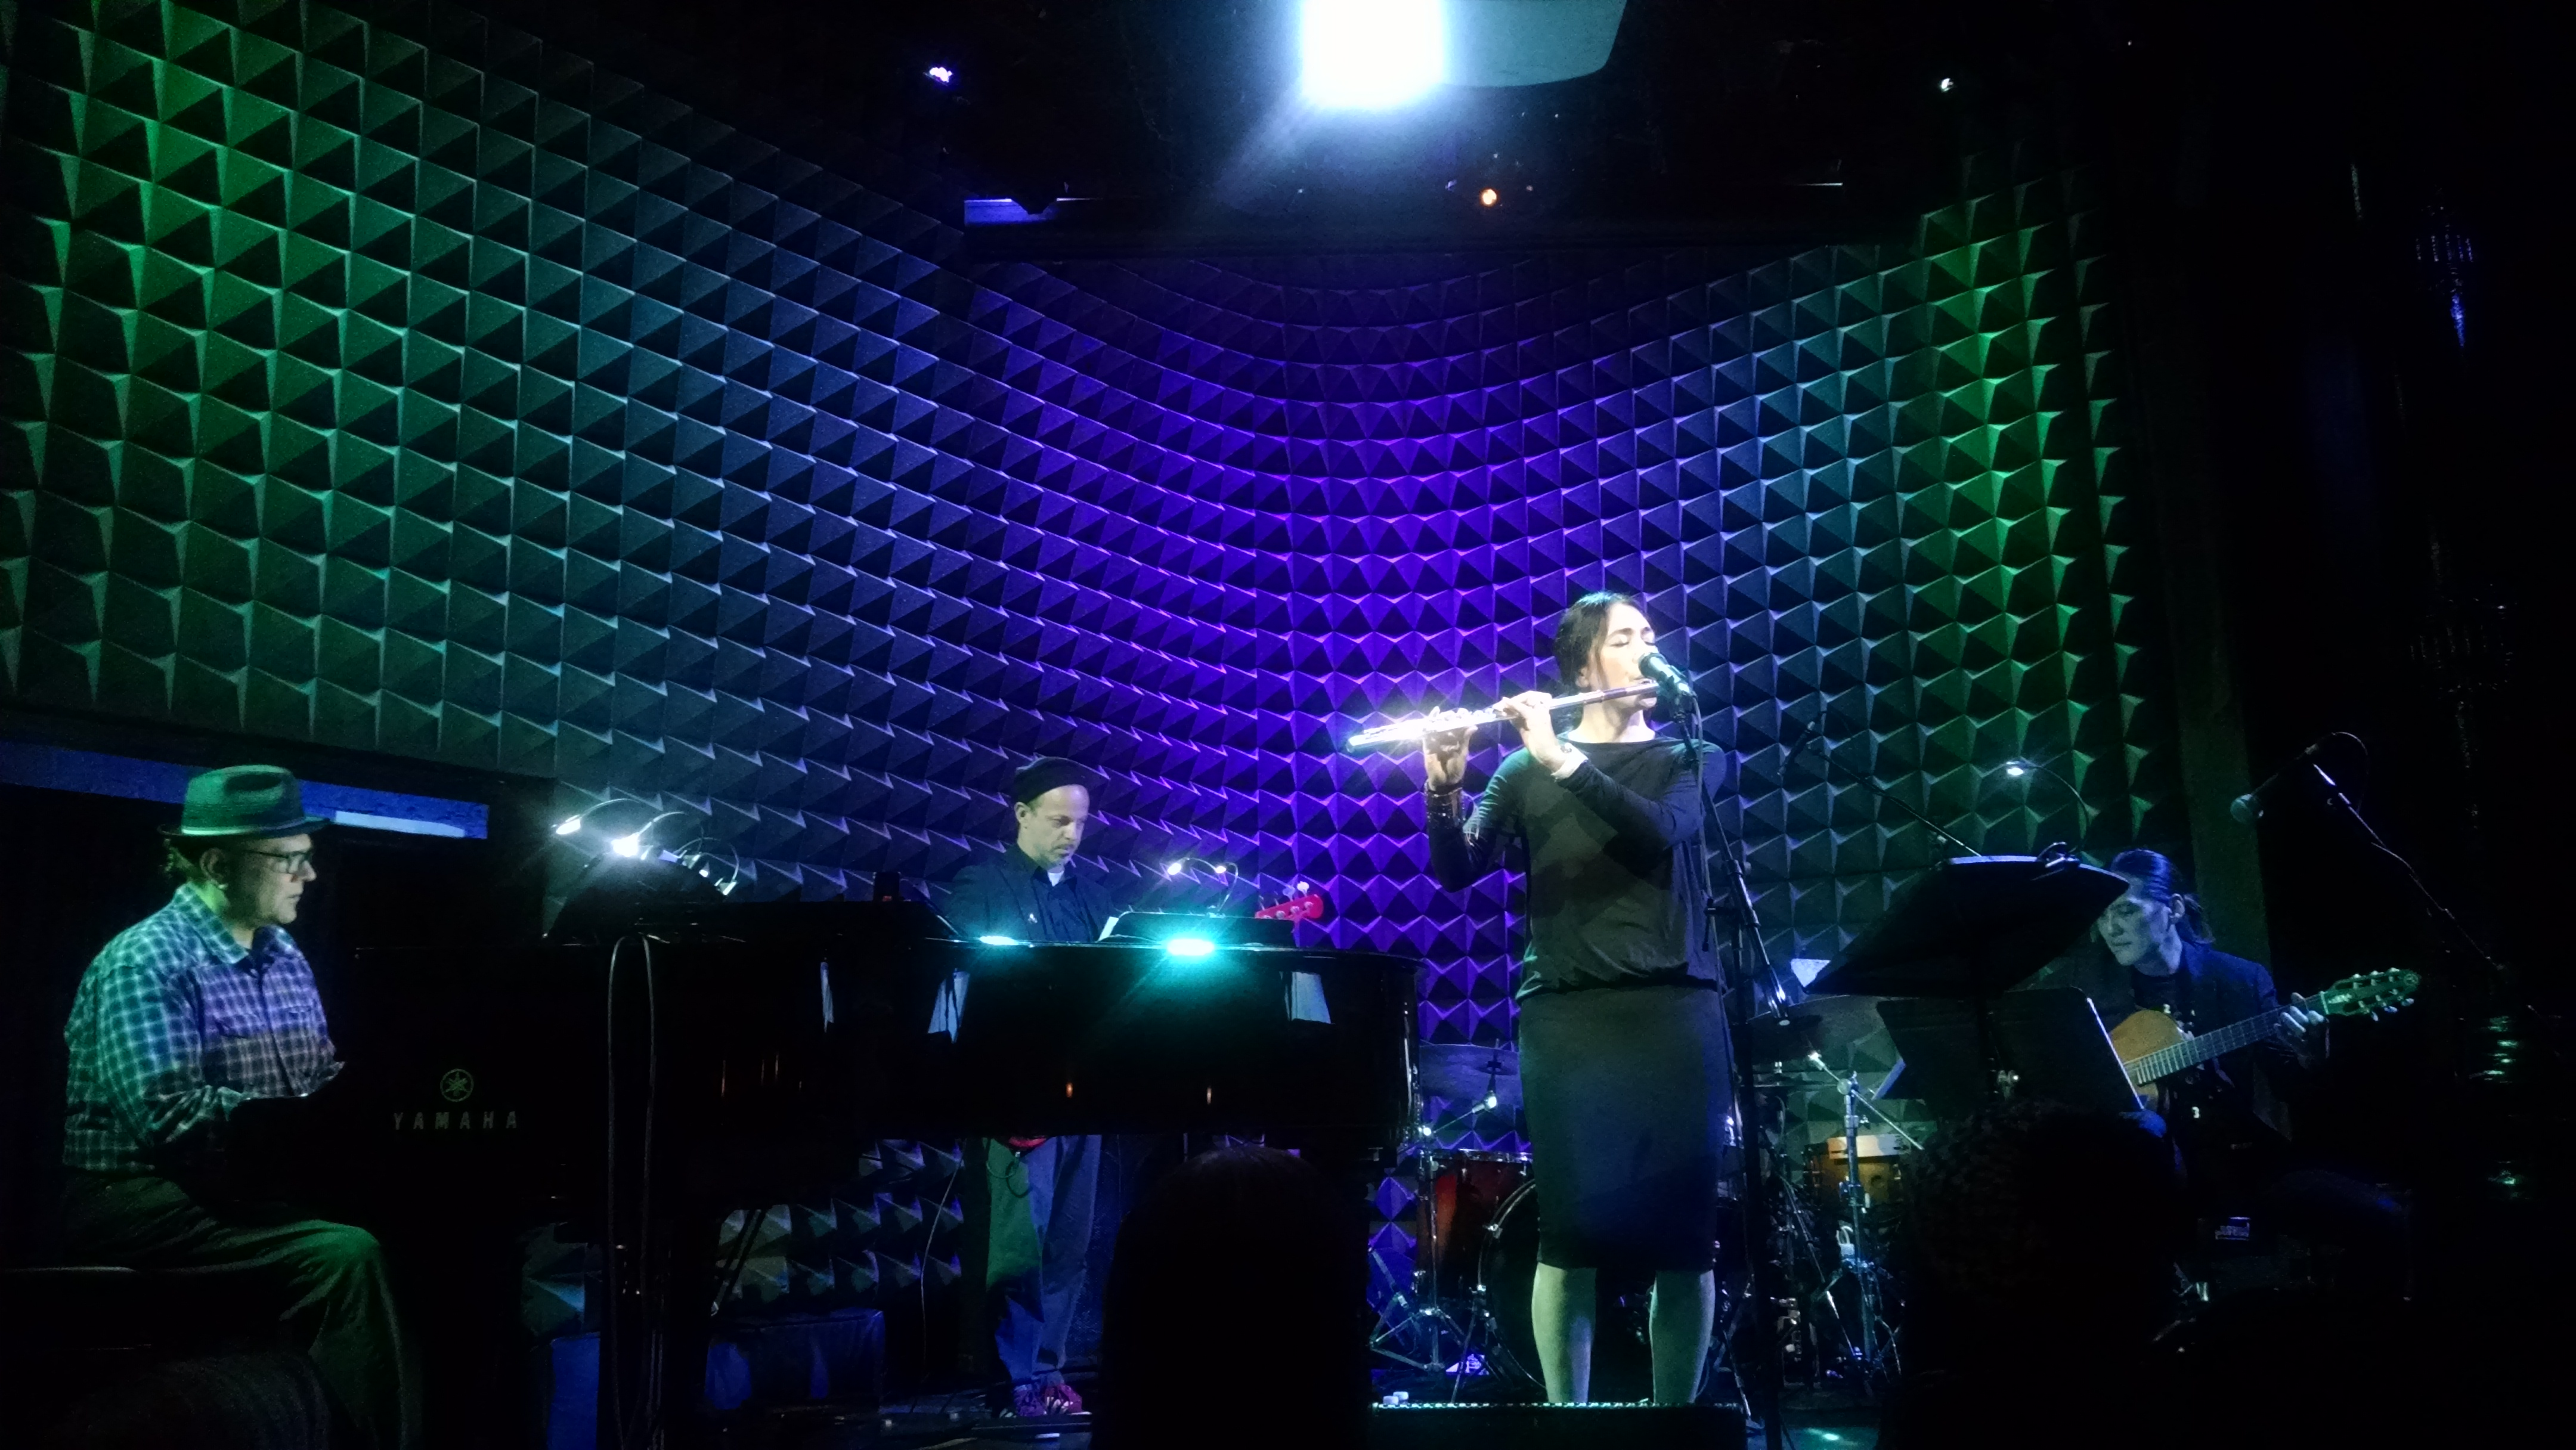 On April 9th, Monday Michiru had a sold out show at Joe's Pub and it...